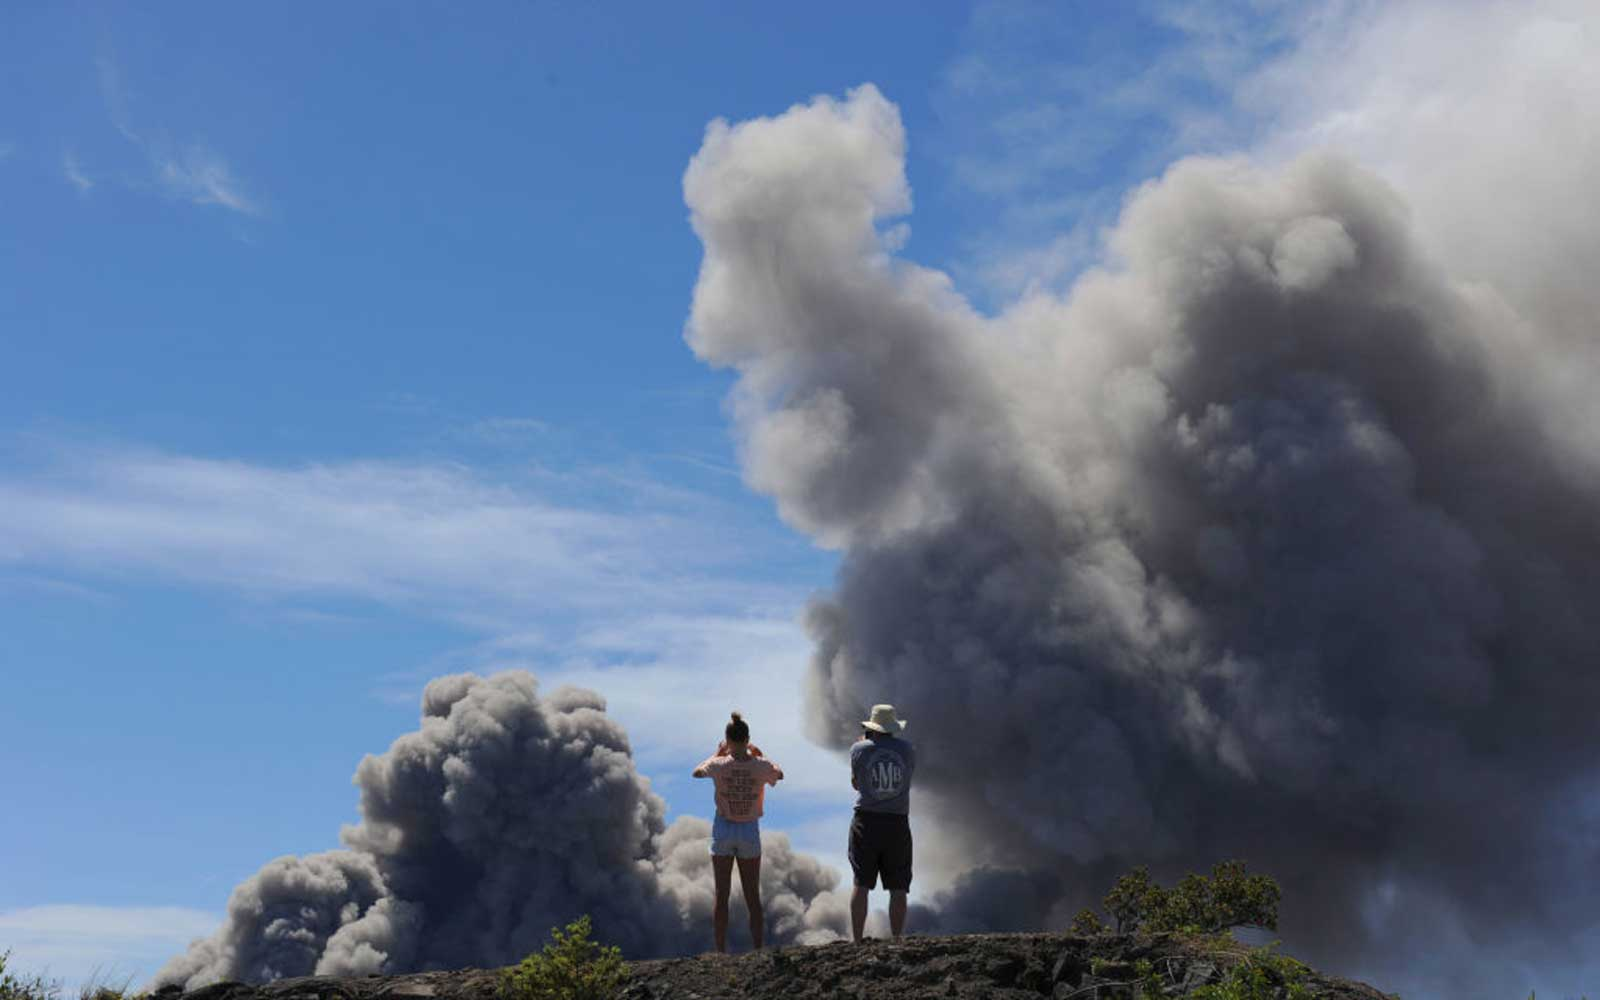 Tourists and locals alike view the plumes of smoke coming from the Halemaumau Vent of the Kilauea Volcano